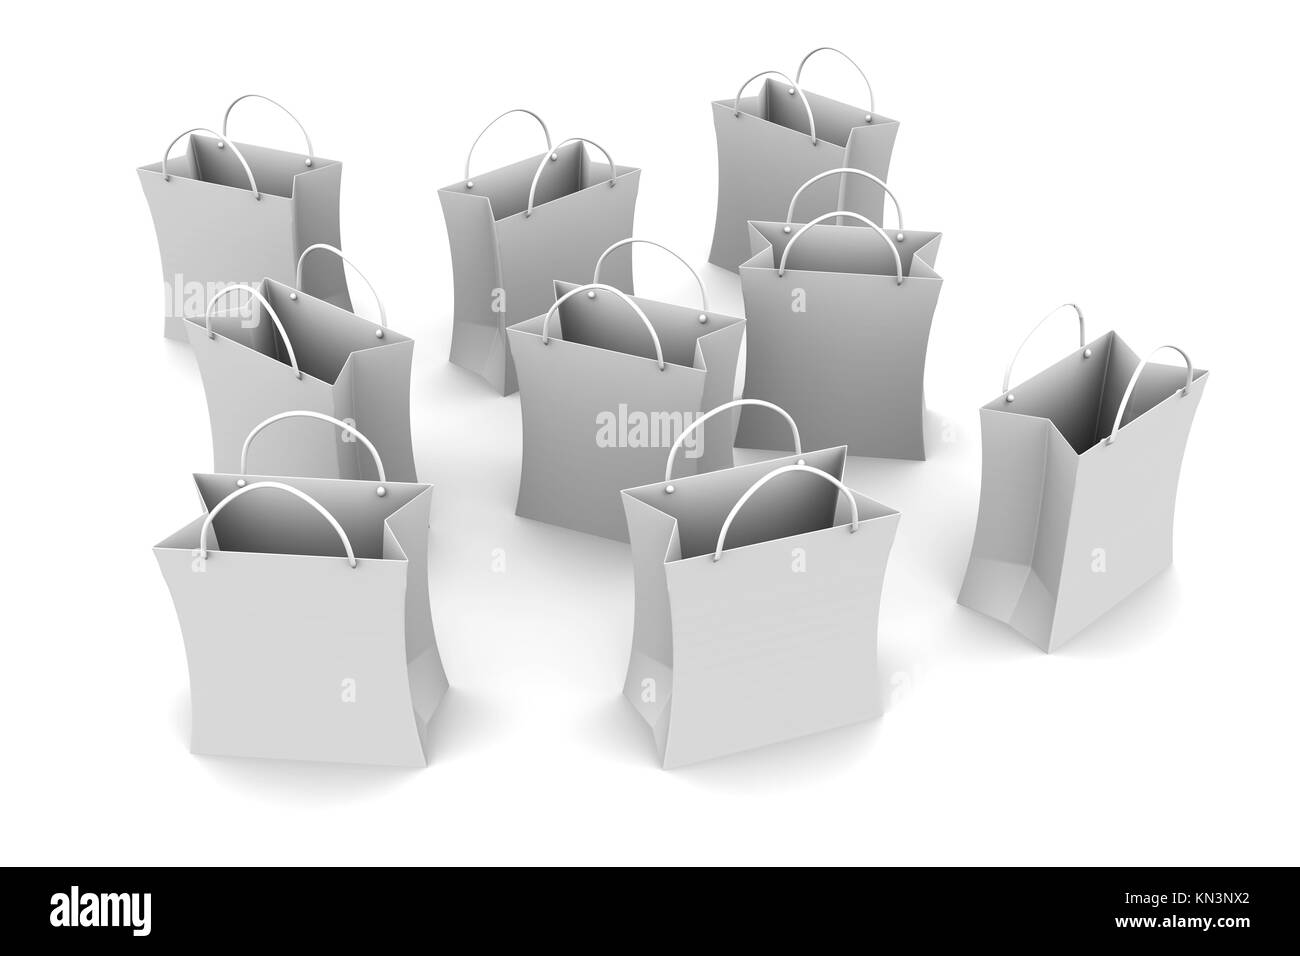 3D rendered Illustration. Isolated on white. Stock Photo